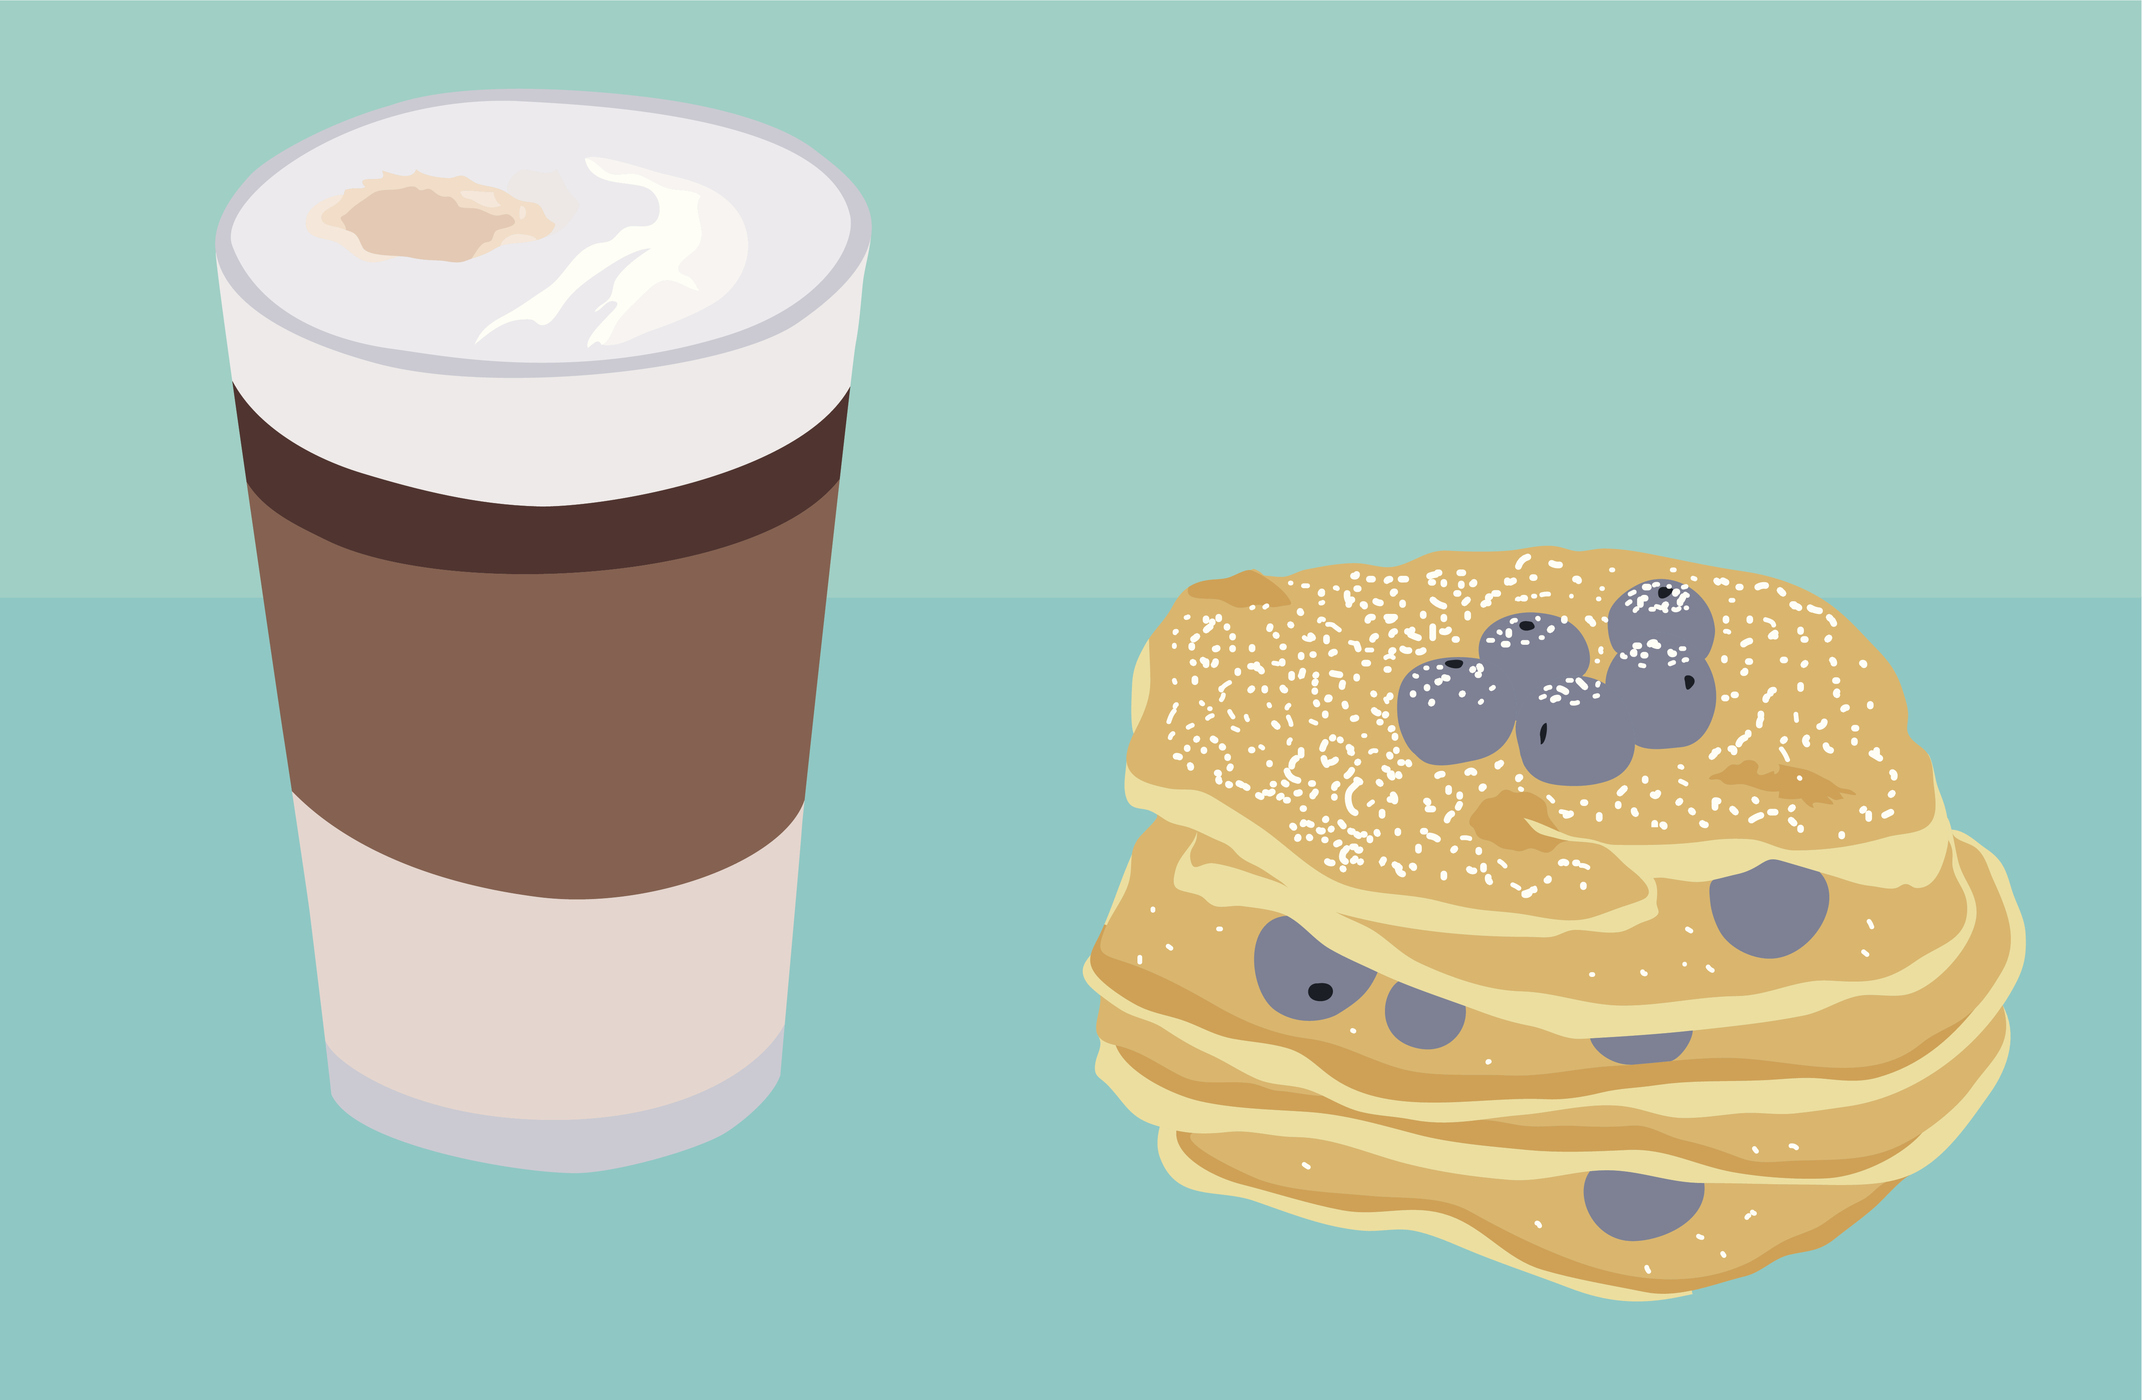 pancake and coffee latte vector illustration